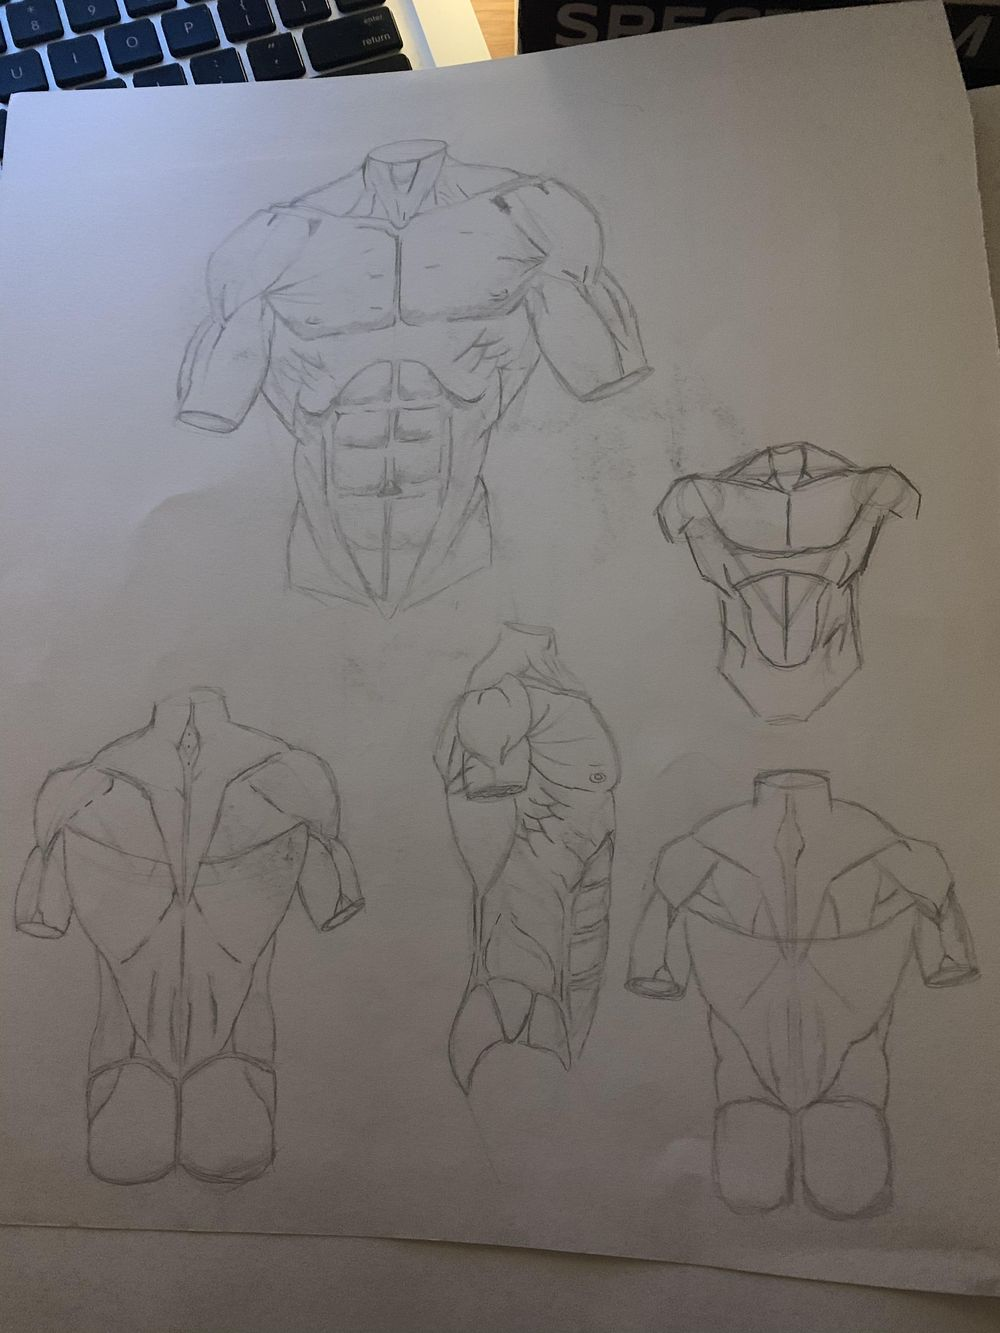 Torso Drawings - image 1 - student project